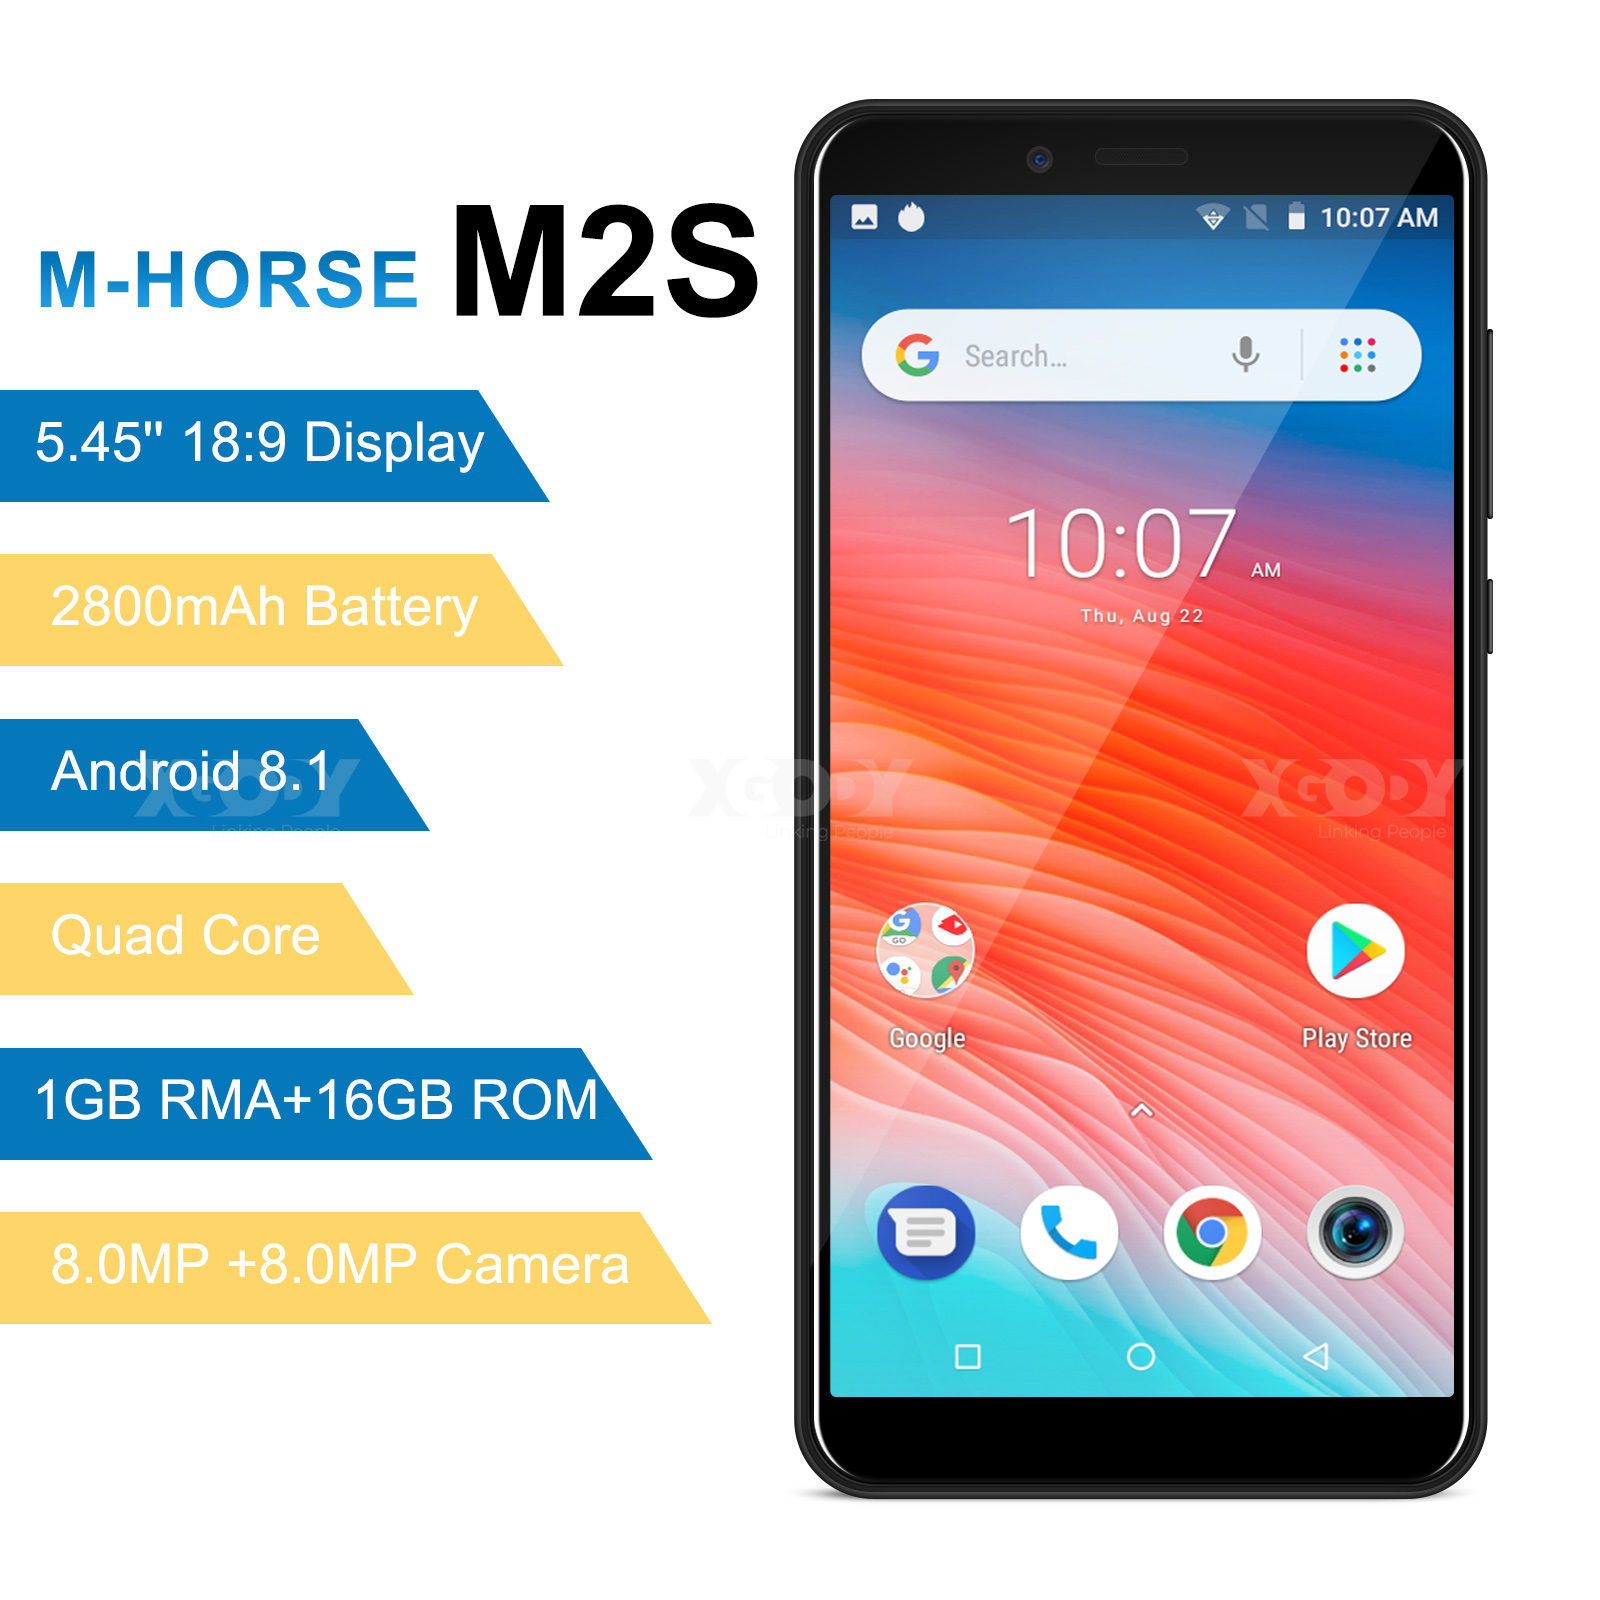 M-HORSE 3G Smartphone Android 8.1 2800mAh Cellphone 1GB+16GB Quad Core 5.45 Inch 18:9 Full Screen 8MP Dual Camera Mobile Phone